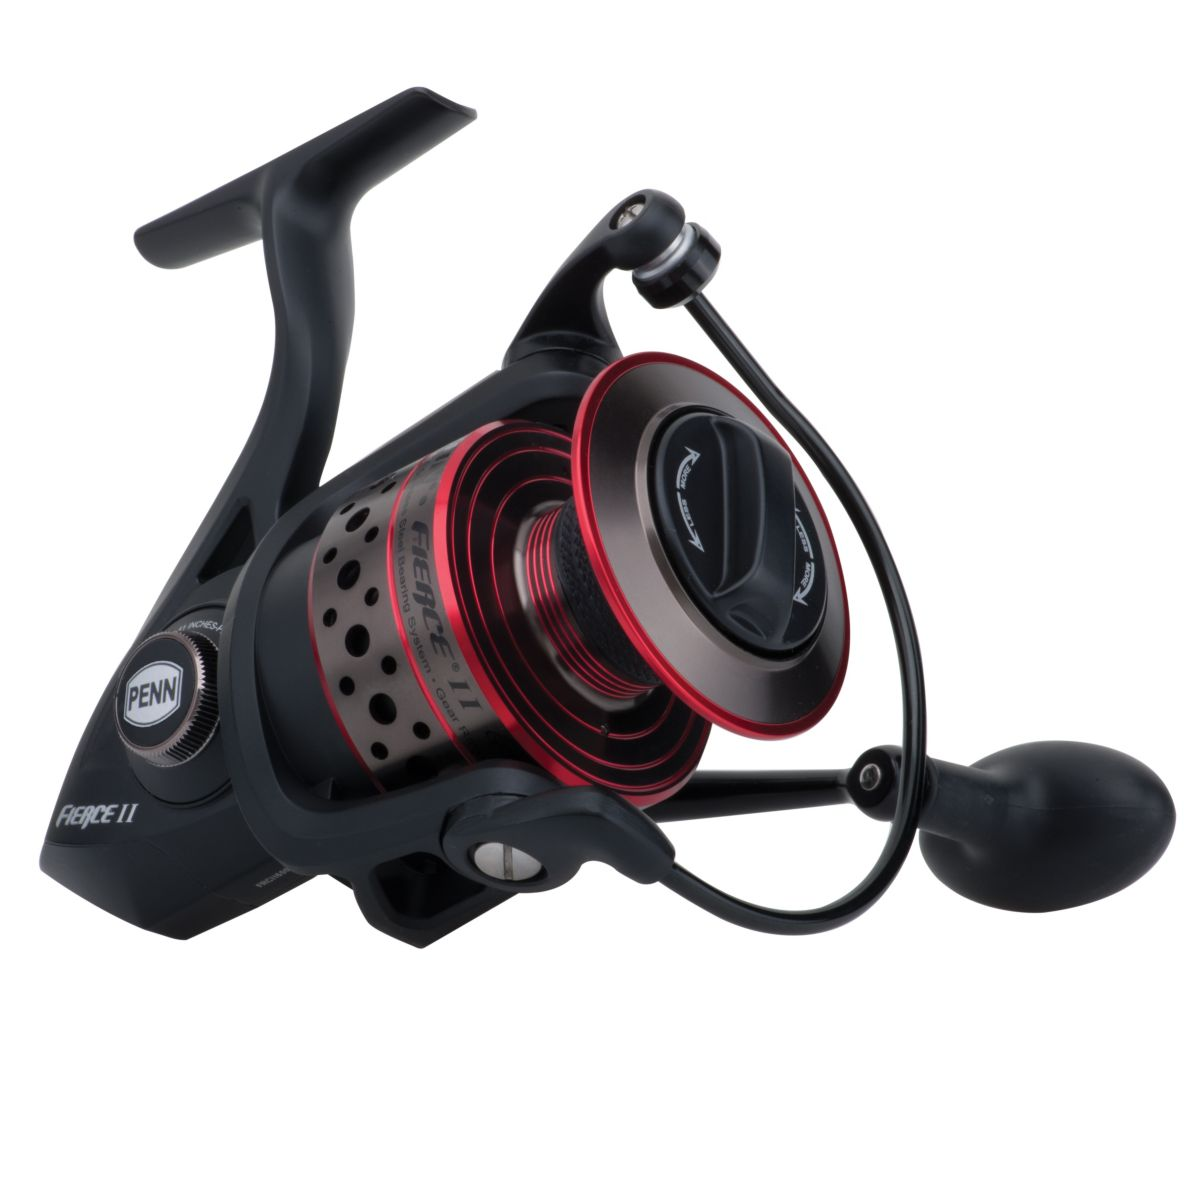 Penn Fierce II FRCII2000 Spinning Reel